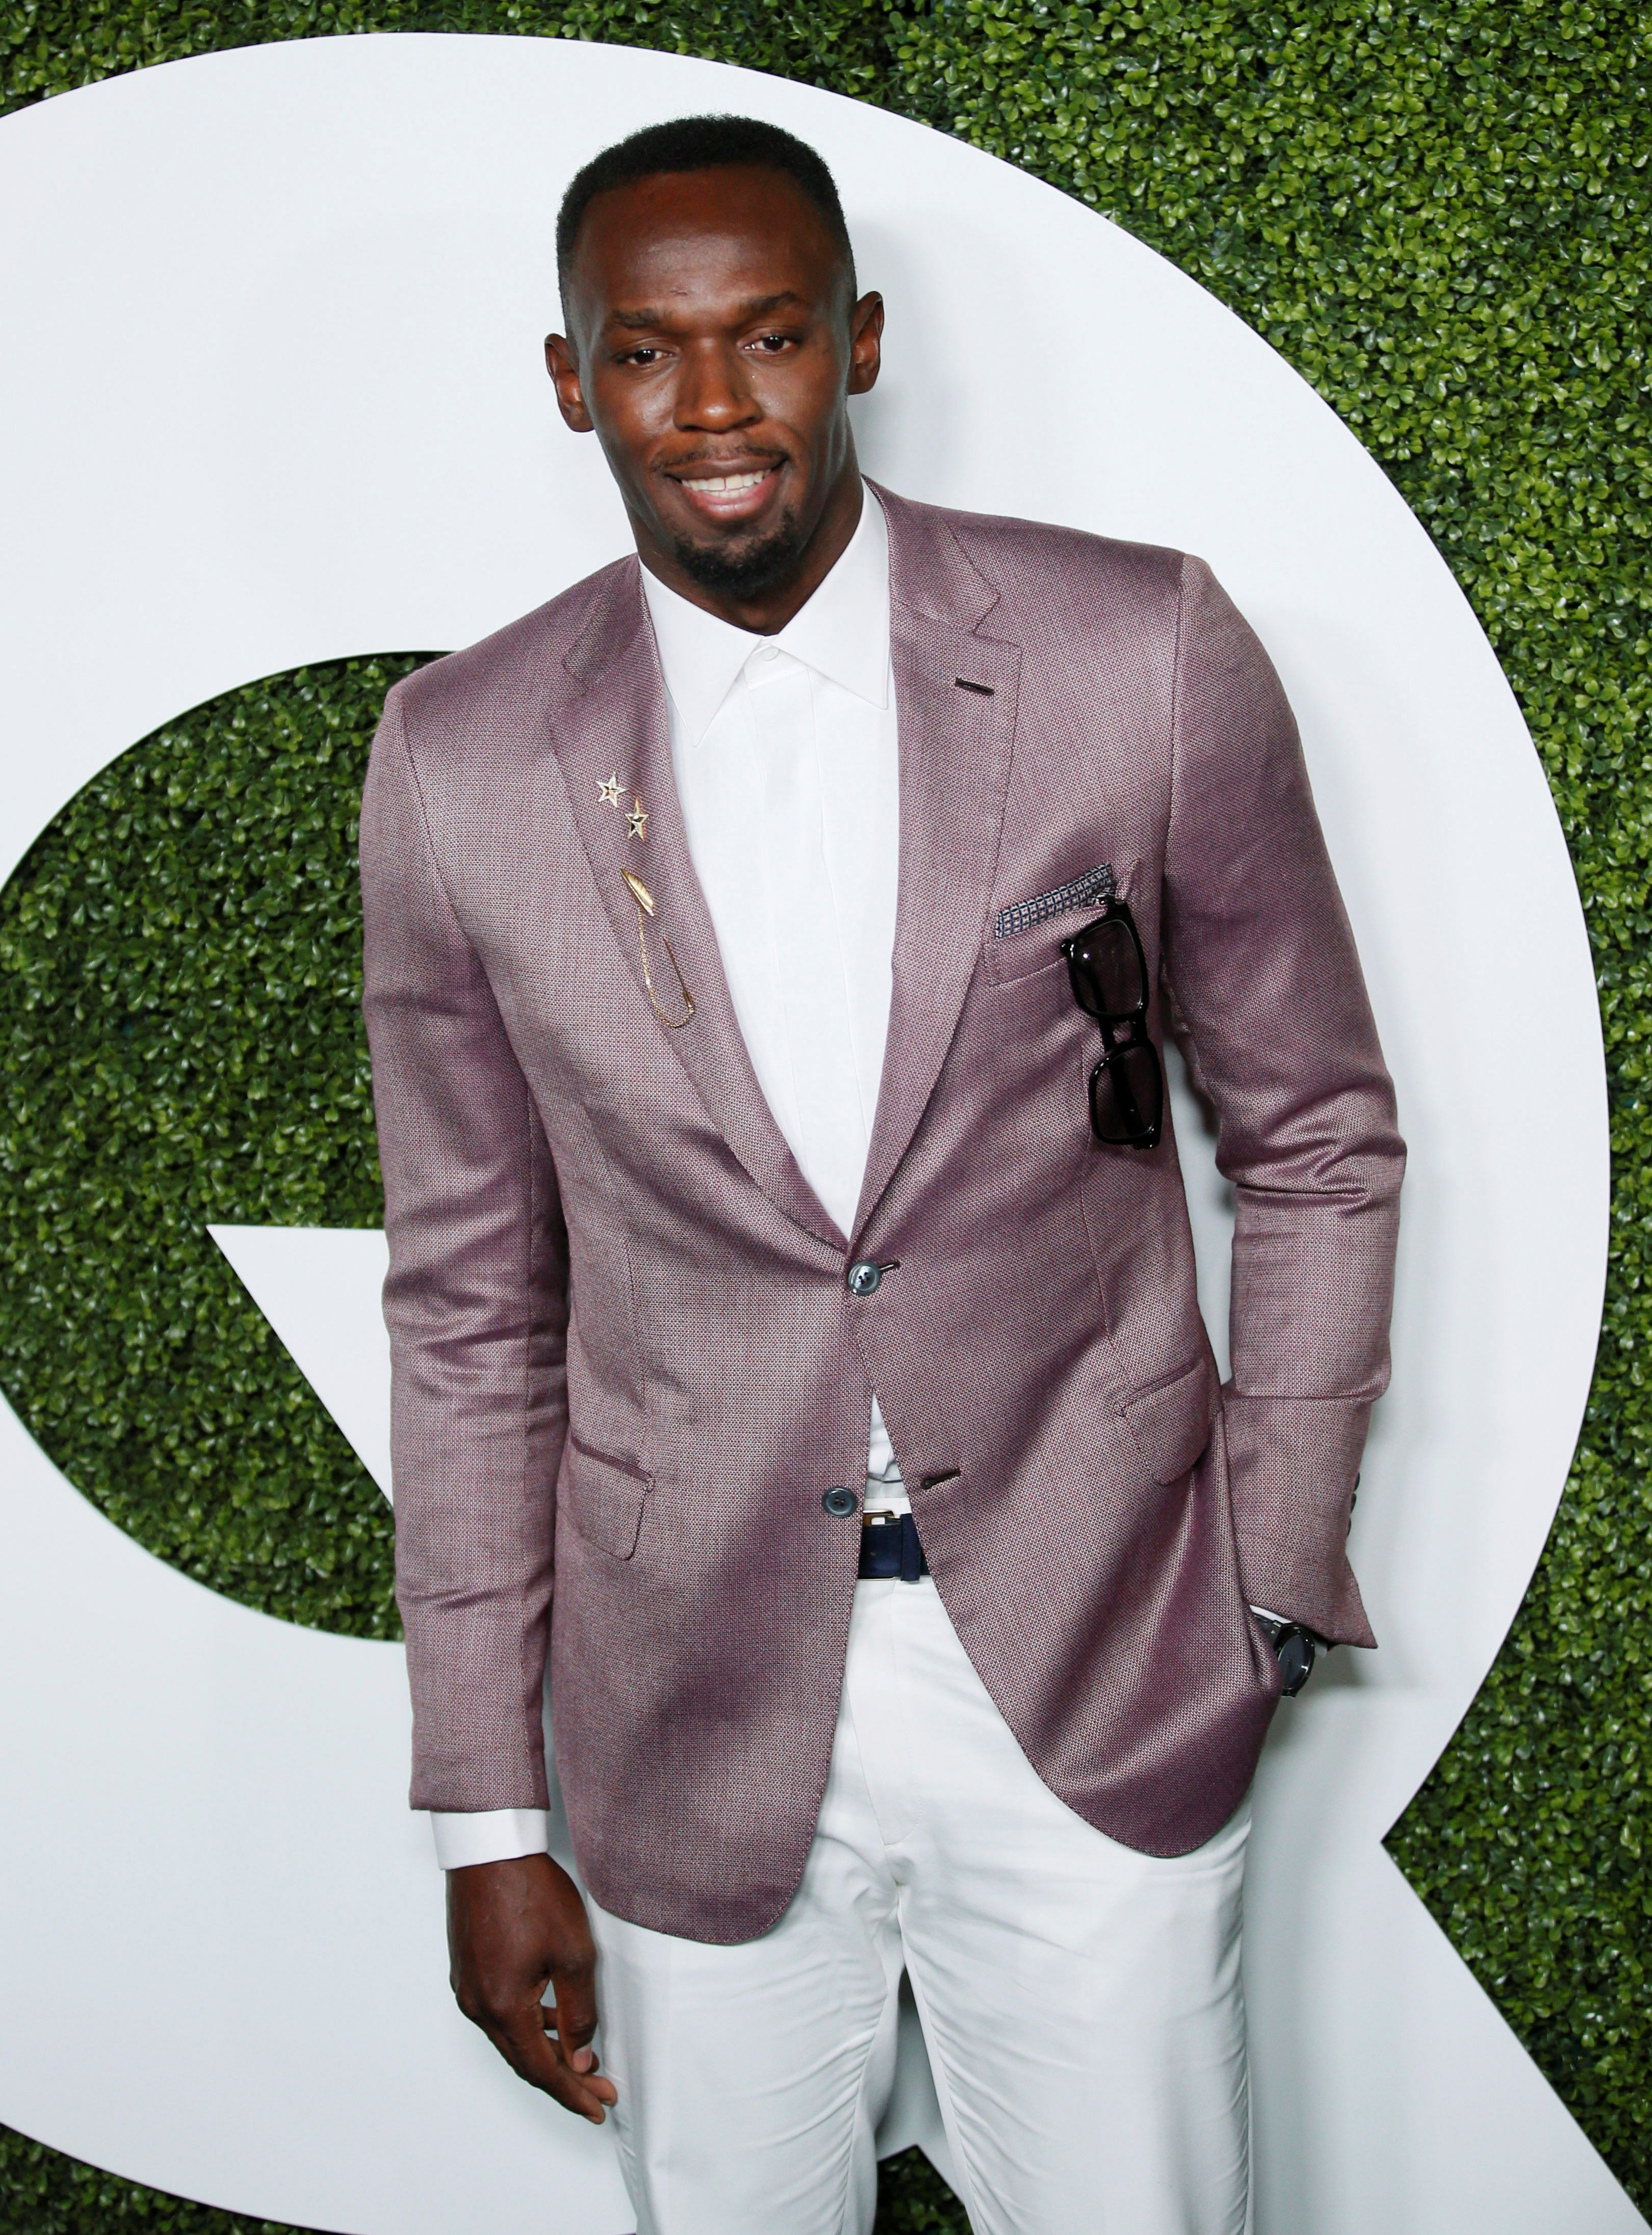 Jamaican sprinter and GQ Man of the Year Usain Bolt poses at the GQ Men of the Year Party in West Hollywood, California, December 8, 2016. REUTERS/Danny Moloshok